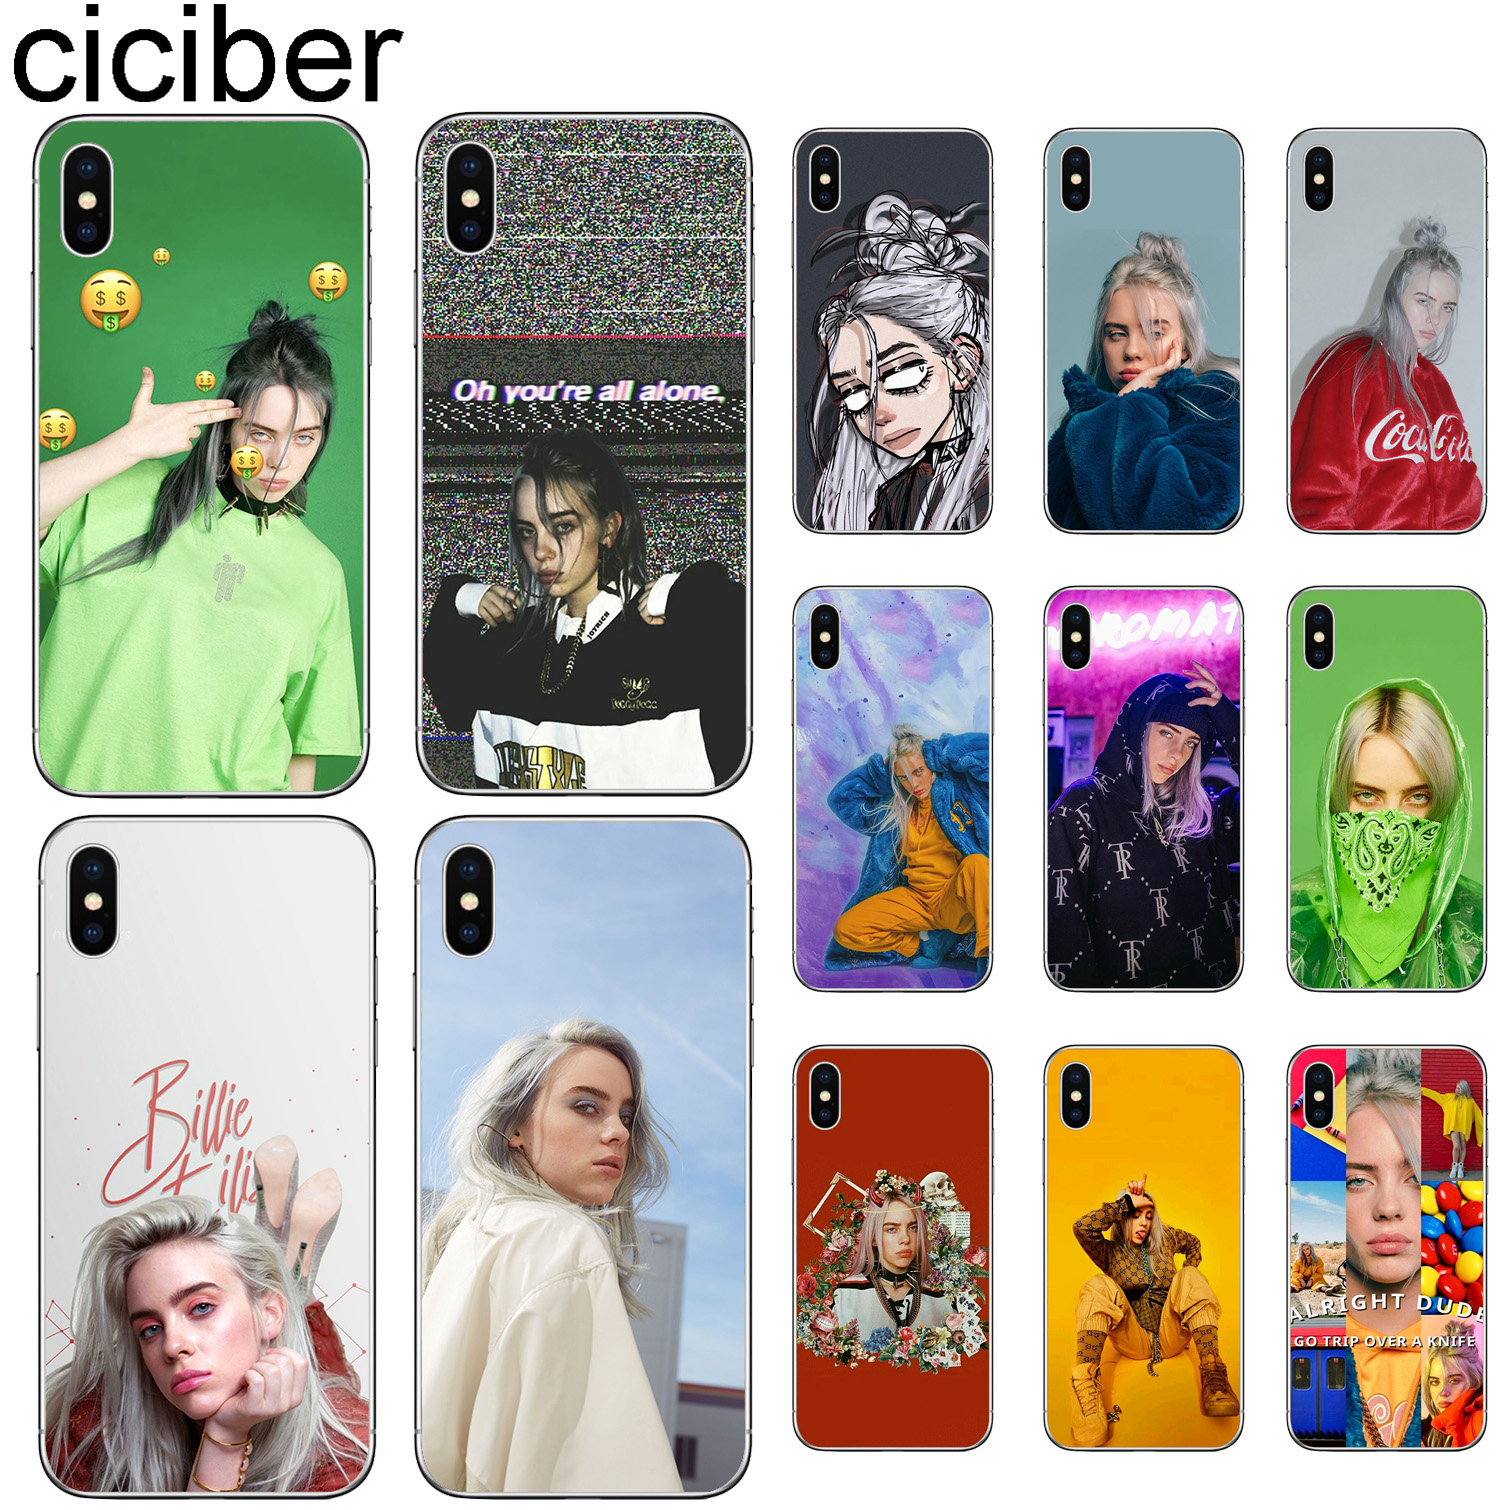 ciciber Billie Eilish Phone Cases For Iphone 11 Pro XR X XS MAX Case for iphone 7 8 6 6S Plus 5S SE Soft TPU Cover Funda Coque